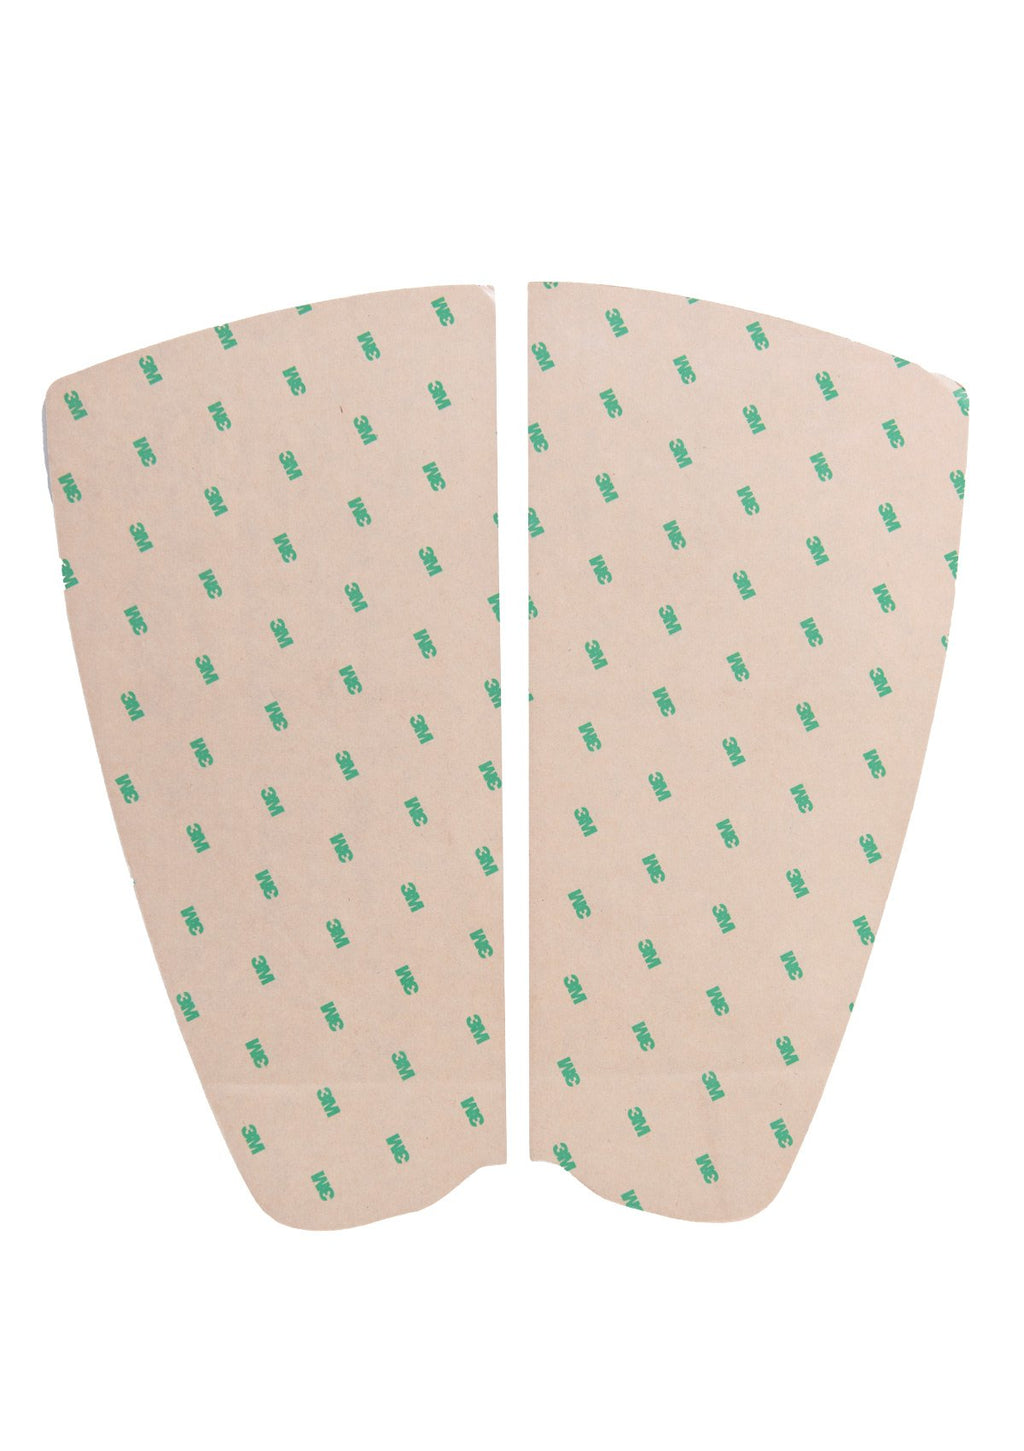 2 Piece Traction Pad